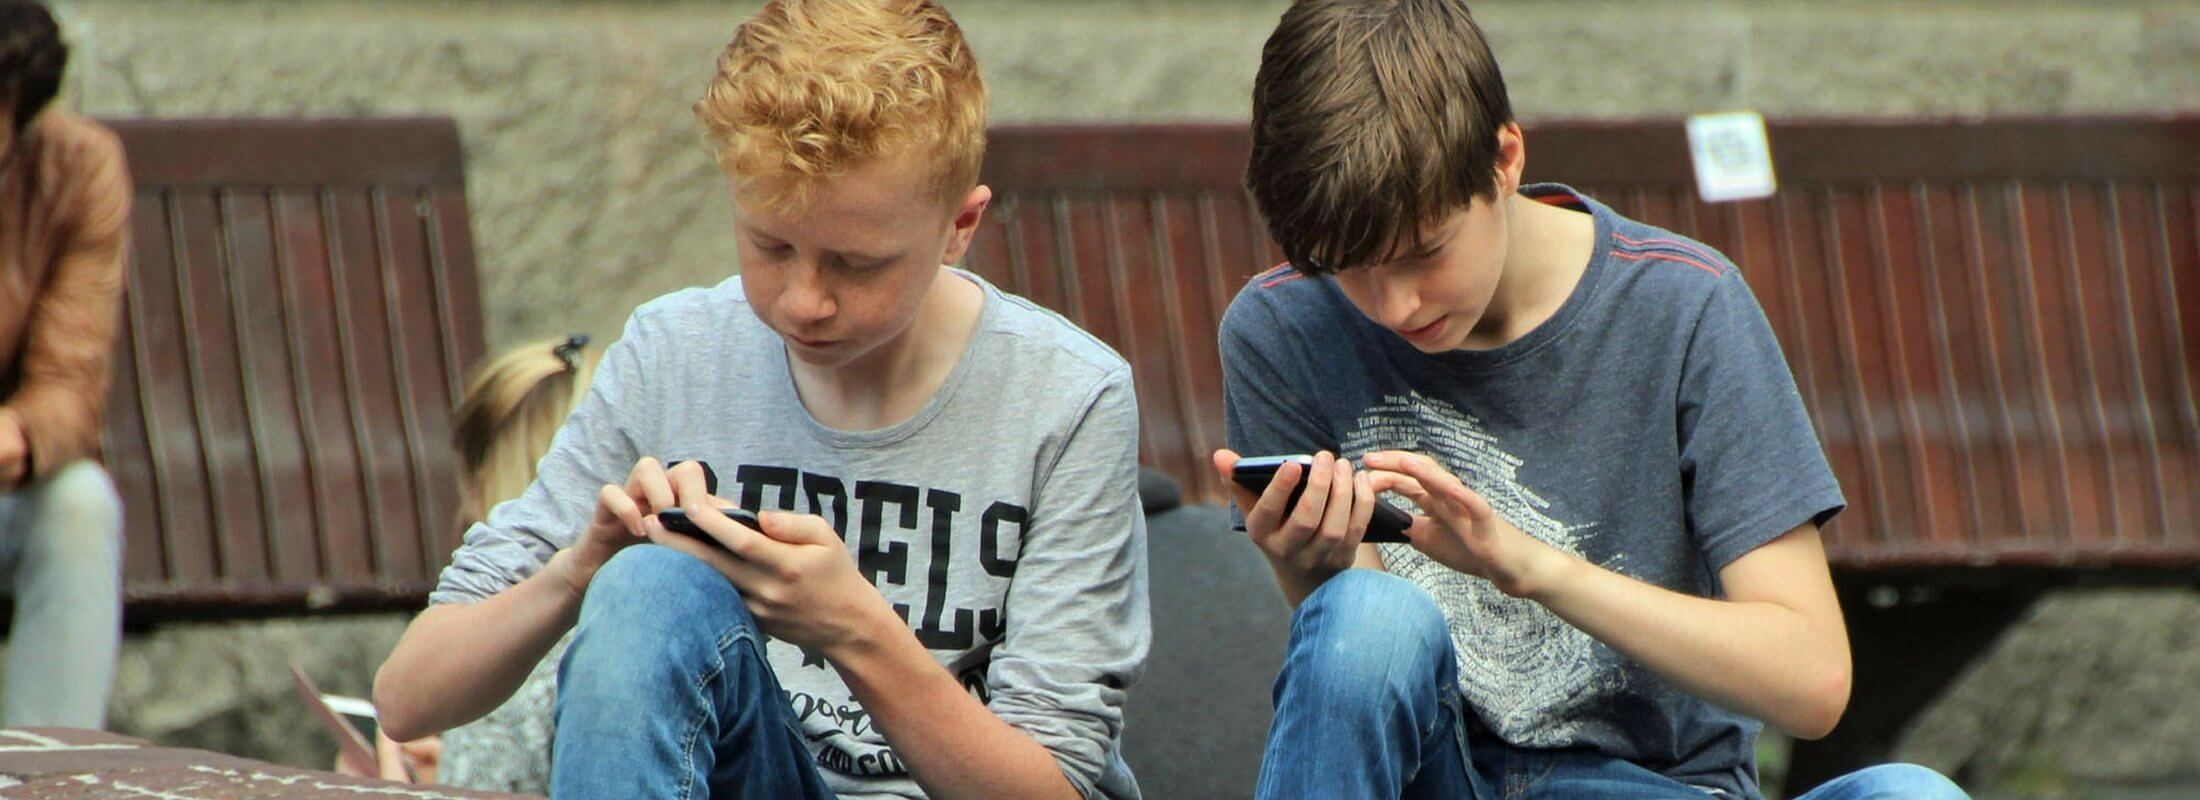 teens sitting on a curb using mobile devices